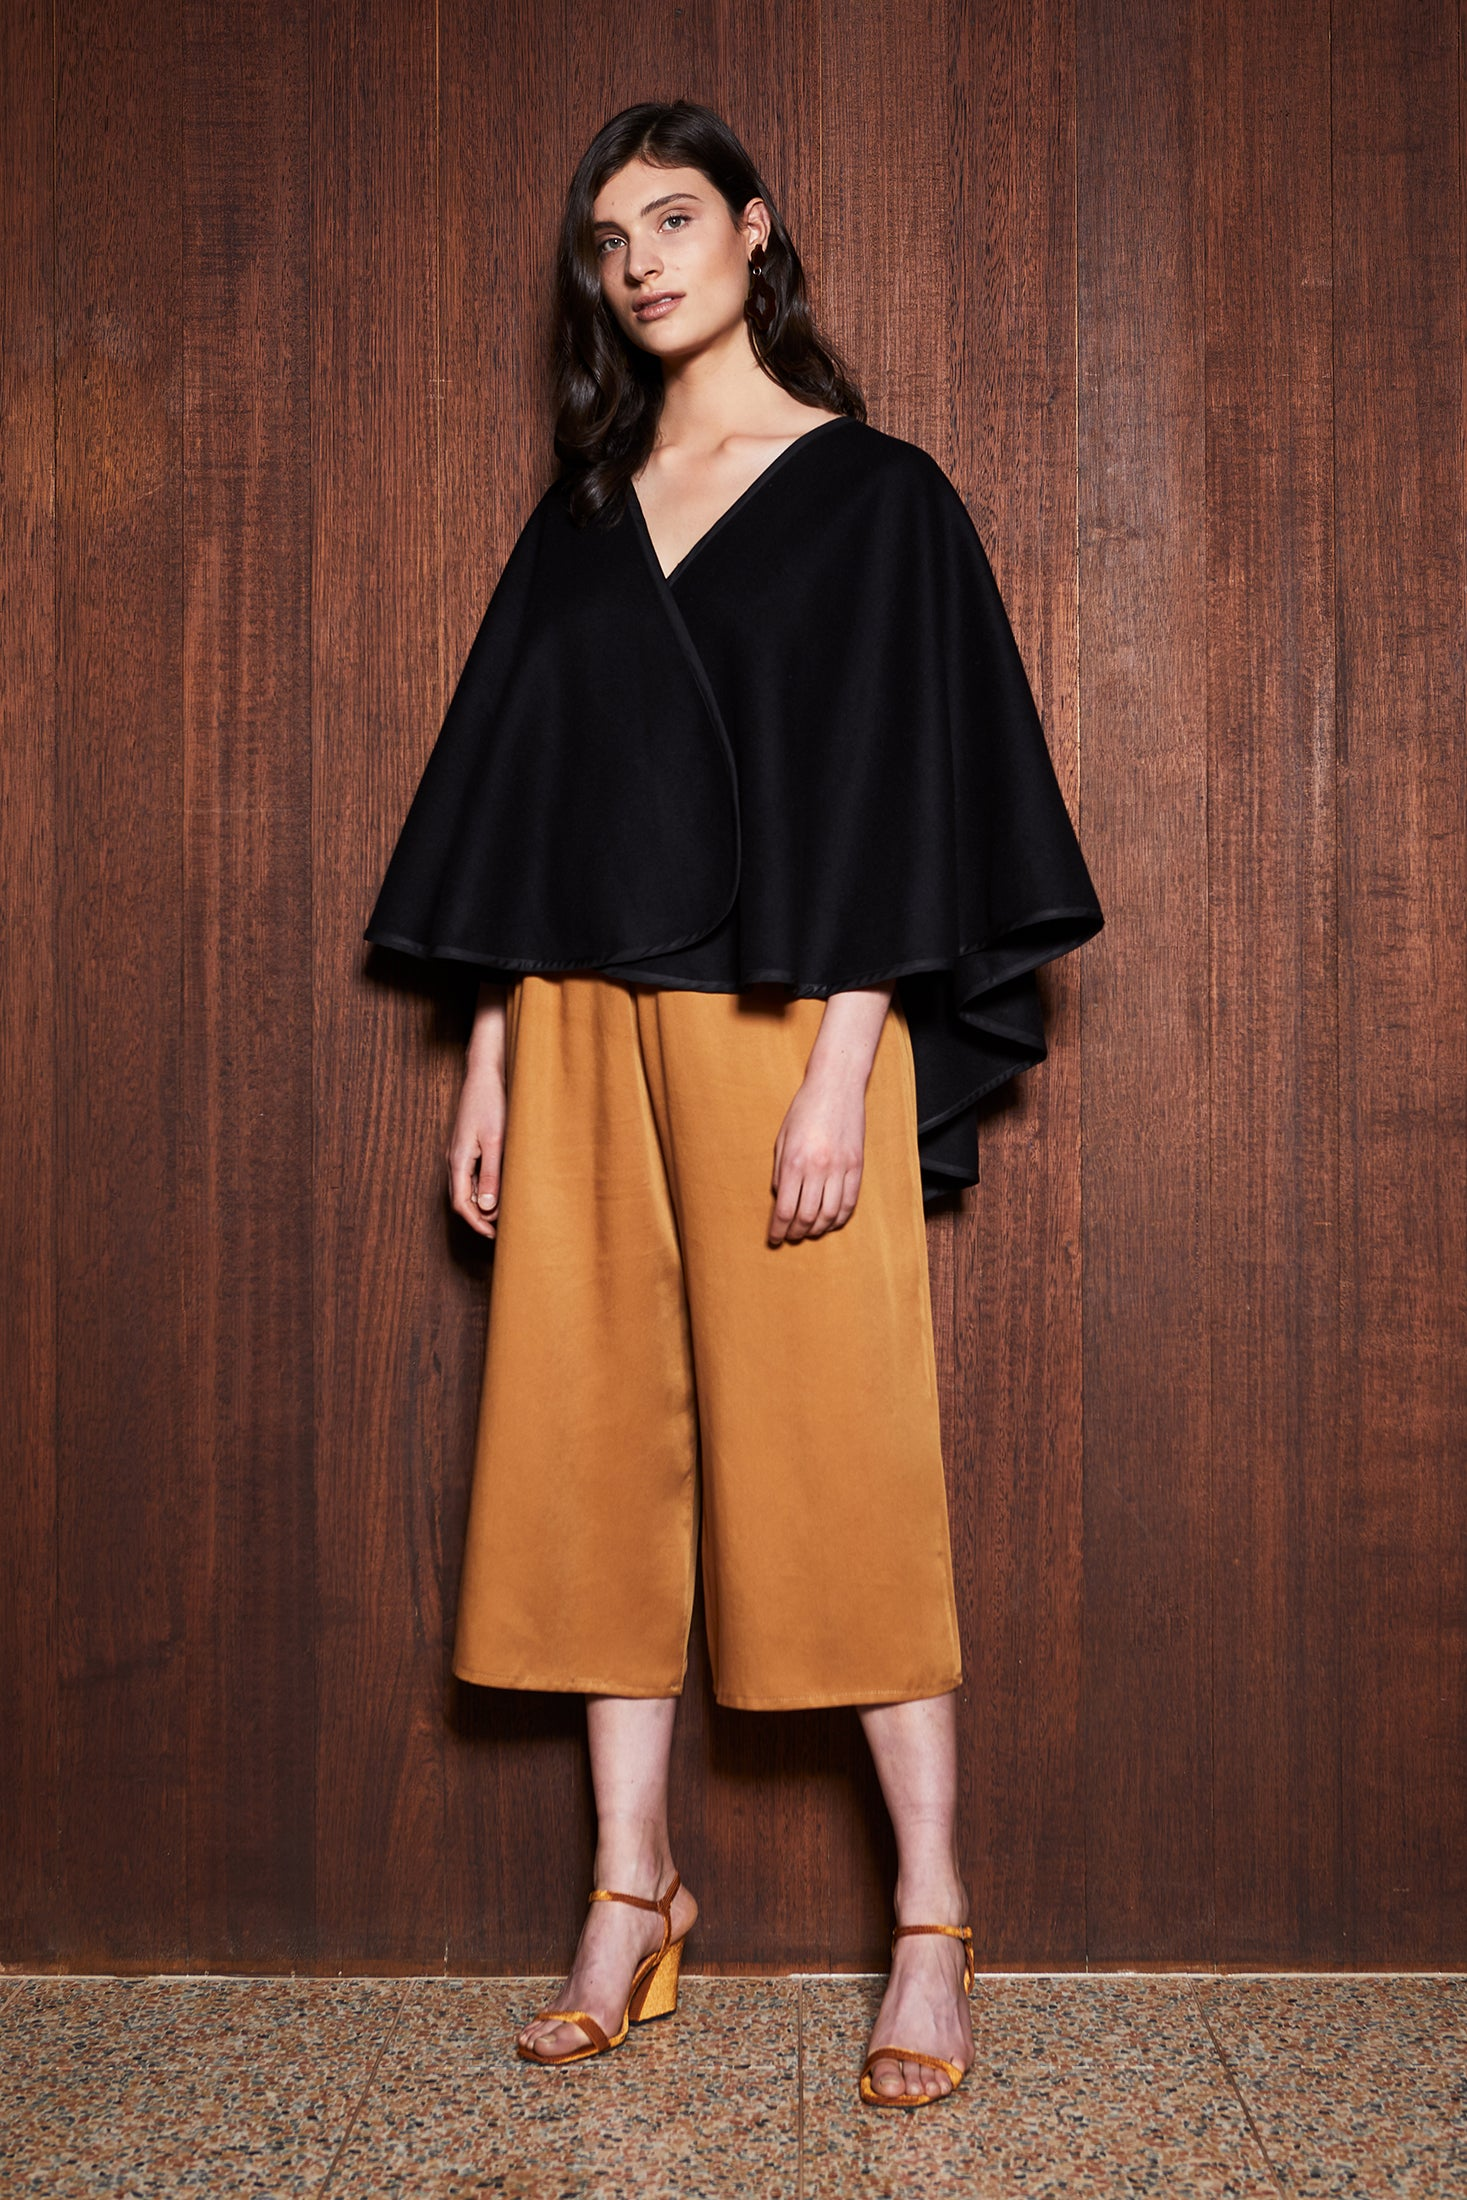 keegan Australian made Women's Clothing in Melbourne Australia Shade Cape Black Poncho Wool Shawl